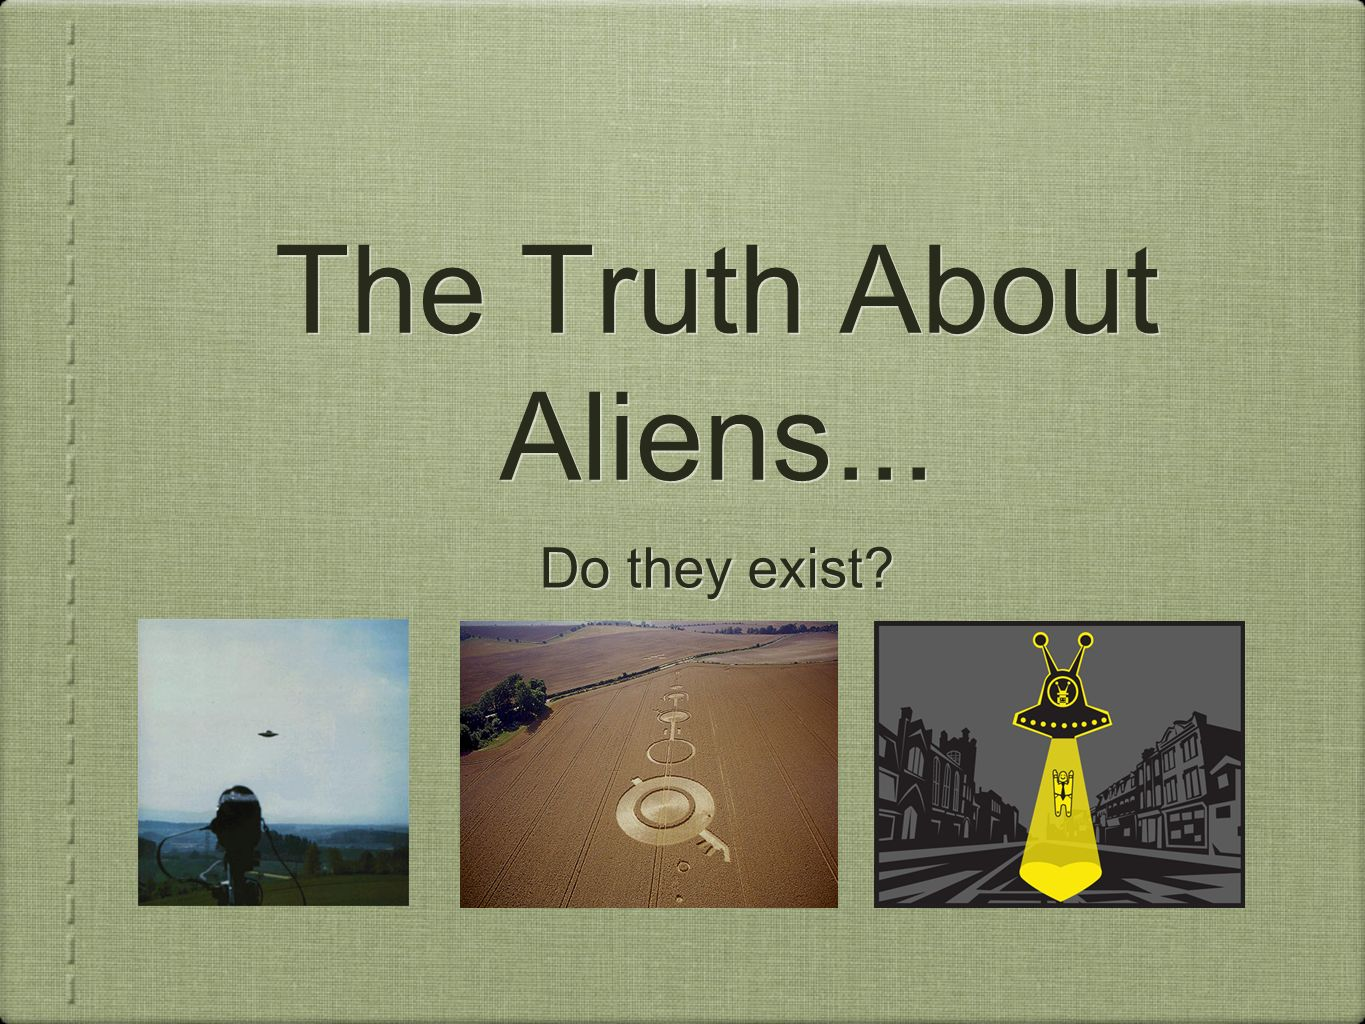 albany honors college essay Aliens essay